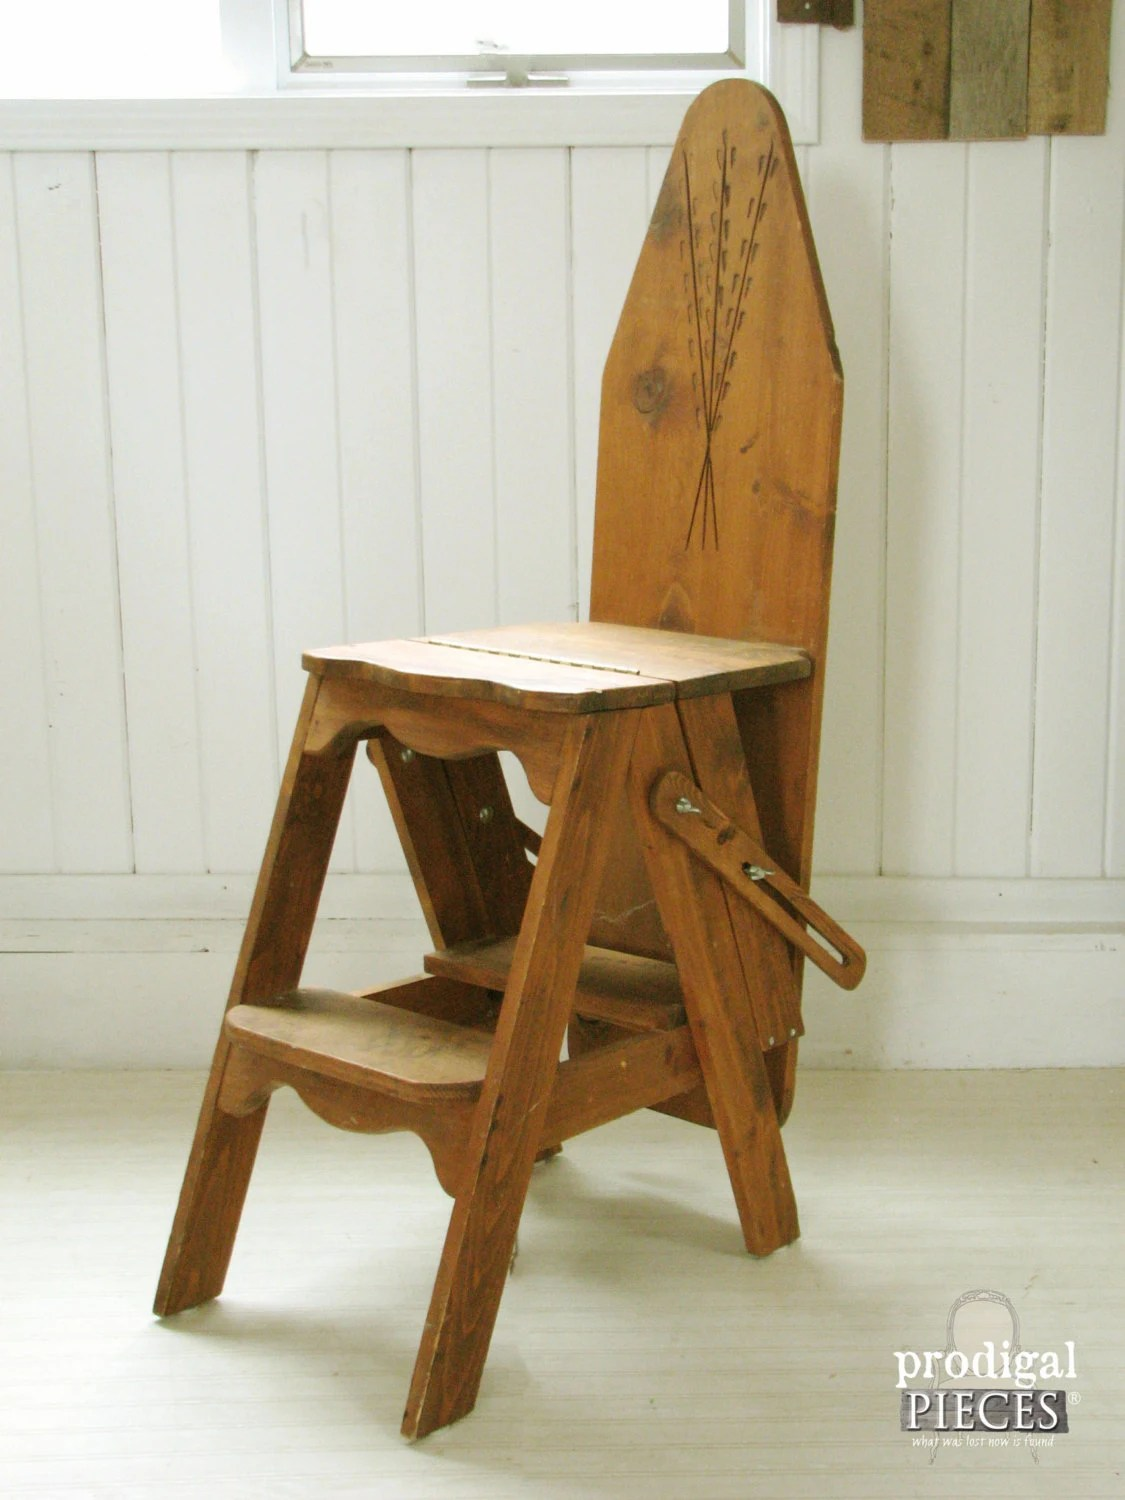 chair step stool ironing board bungee cord menards hand carved rustic unique folding